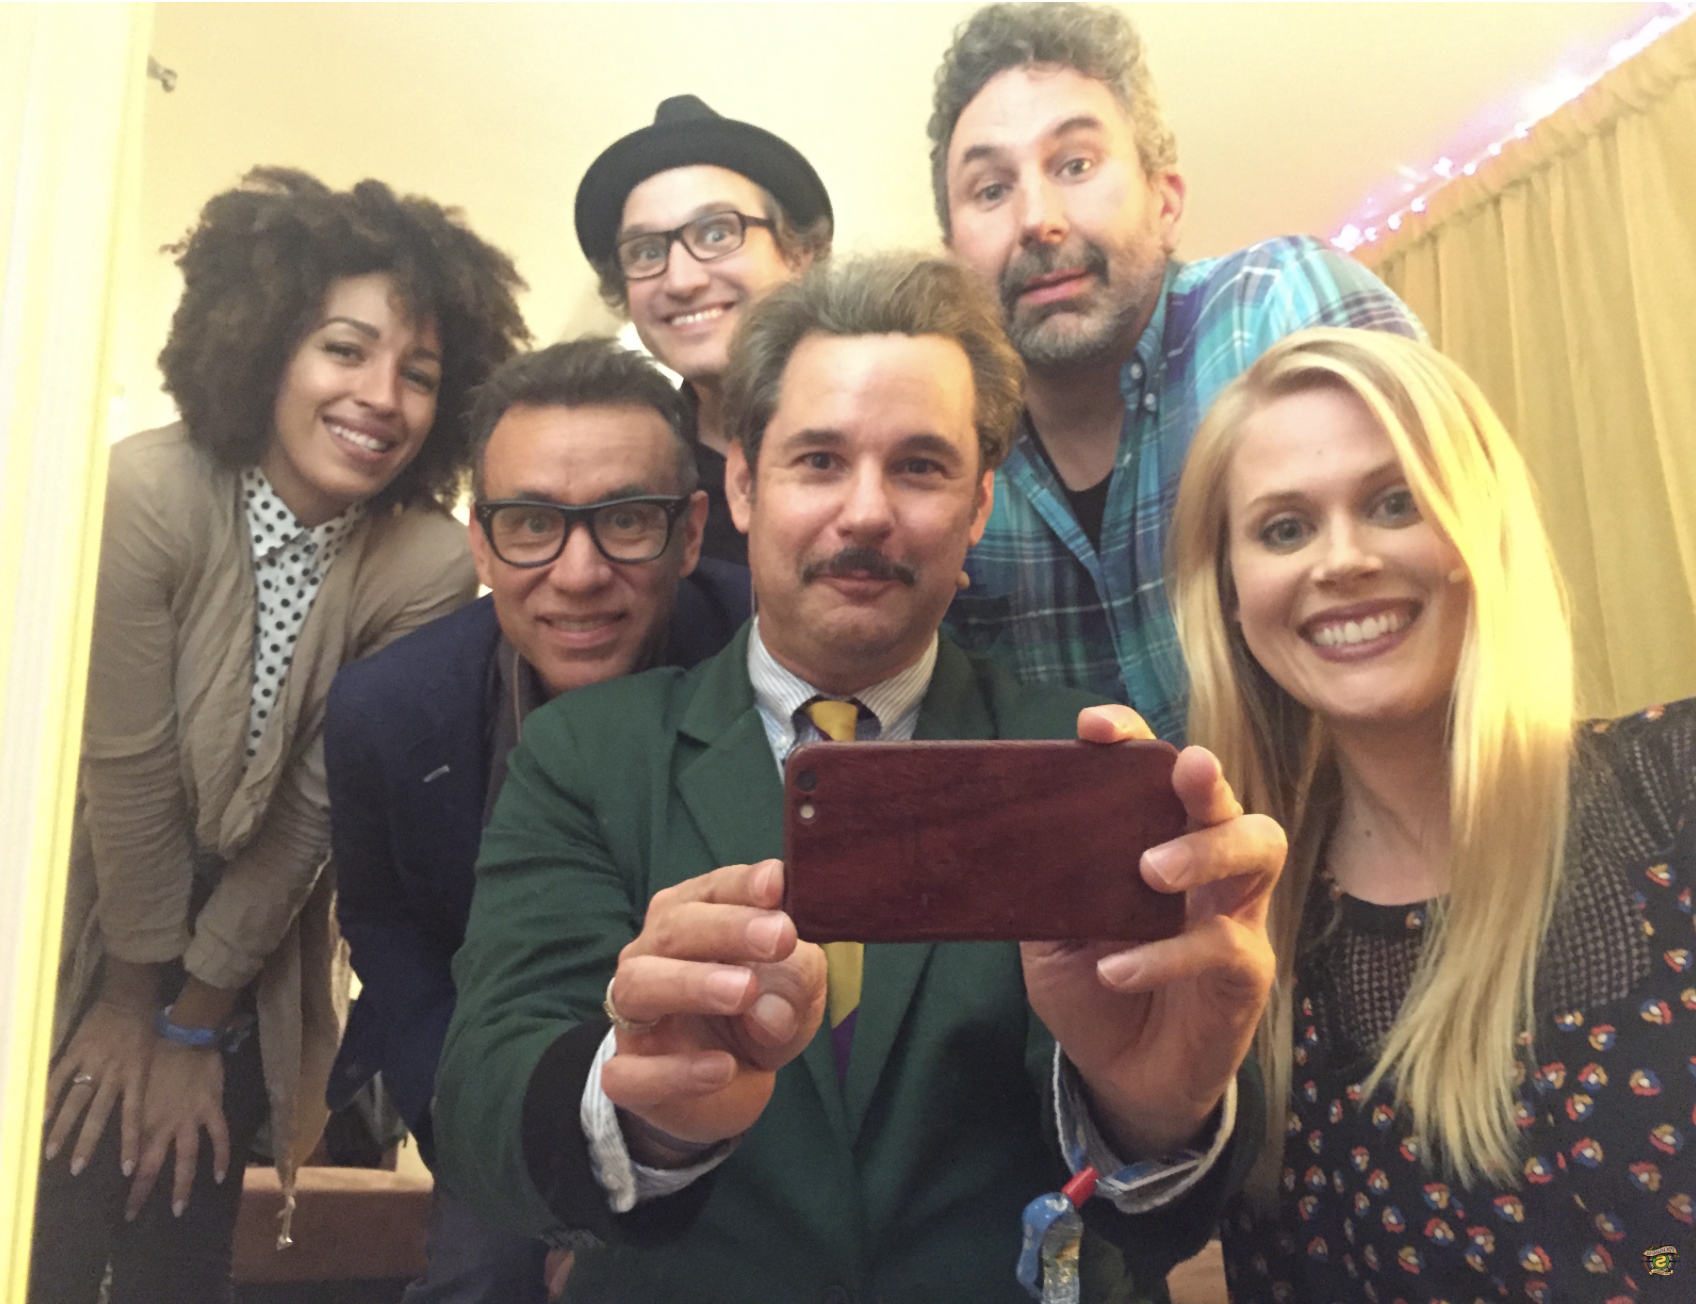 "Spontaneanation with Paul F. Tompkins#79 Madrid: Live from Outside Lands 2016(September 26th, 2016) - Paul F. Tompkins welcomes all back to Spontaneanation, recorded in front of a LIVE audience at Outside Lands in San Francisco! This week, Paul's special guest is Fred Armisen of Portlandia and Saturday Night Live! They chat about whether a cheeseburger is a part of the sandwich family, discovering that Alzheimer's didn't mean ""old timers,"" and the true meaning of the Madonna song ""Like A Prayer."" Paul is then joined by Craig Cackowski, Tawny Newsome, and Little Janet Varney, to improvise a story set in Madrid. And as always, Eban (only the best) Schletter scores it all on piano!"